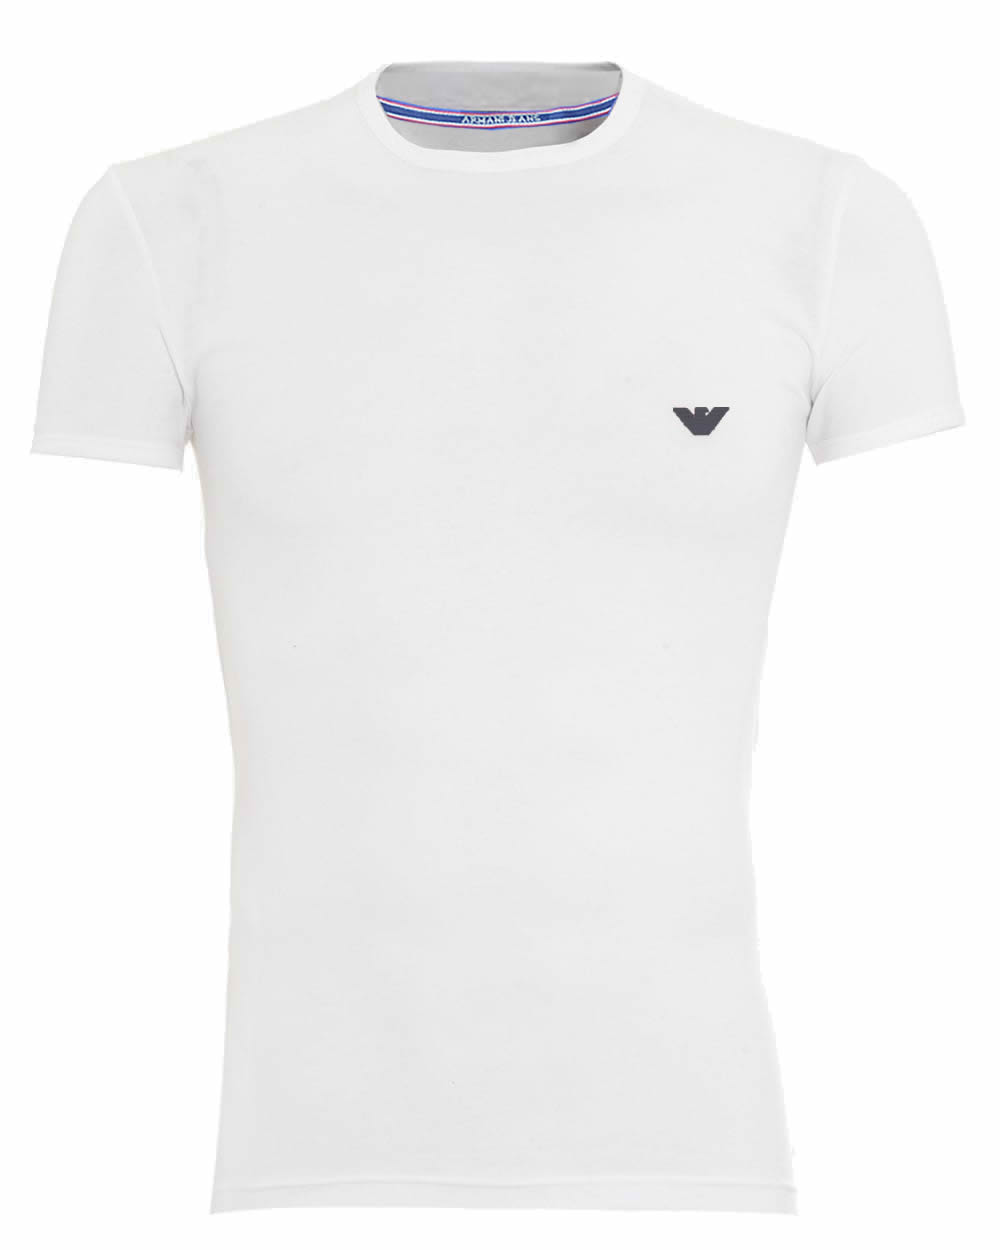 68dd663c391f Armani Jeans Short Sleeve Crew T-Shirt. Small Eagle in White ...